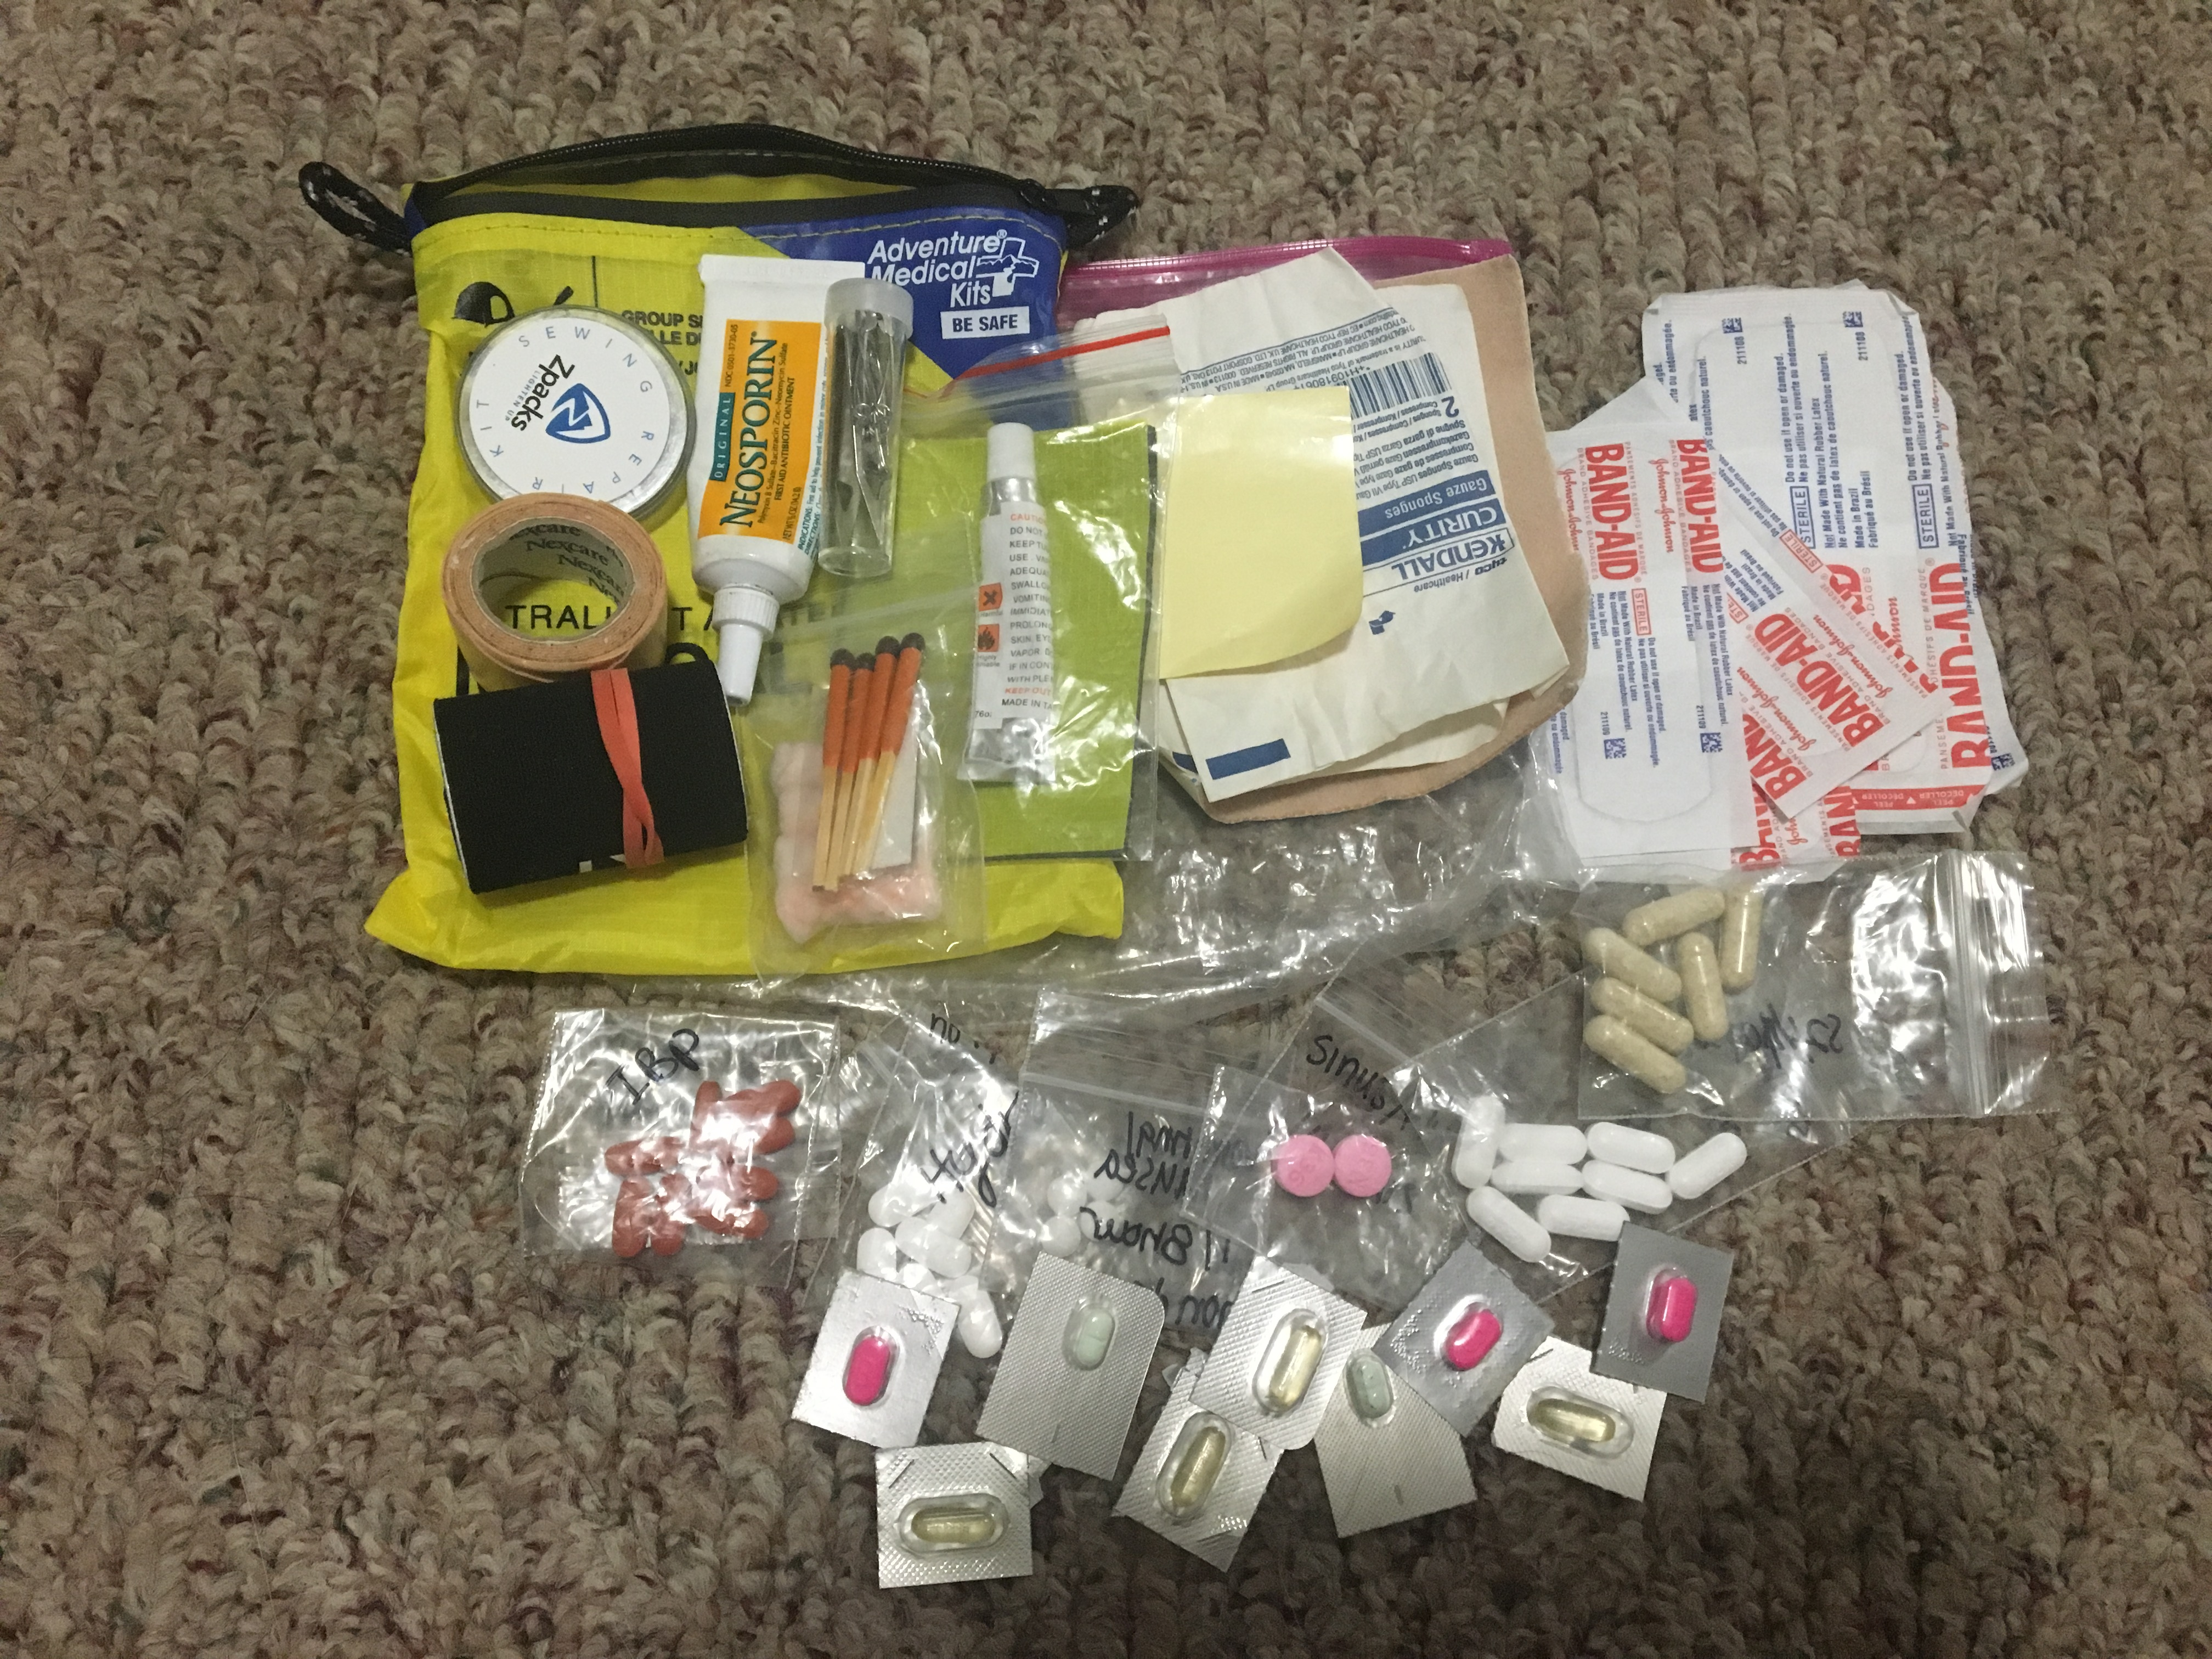 First-aid kit photo